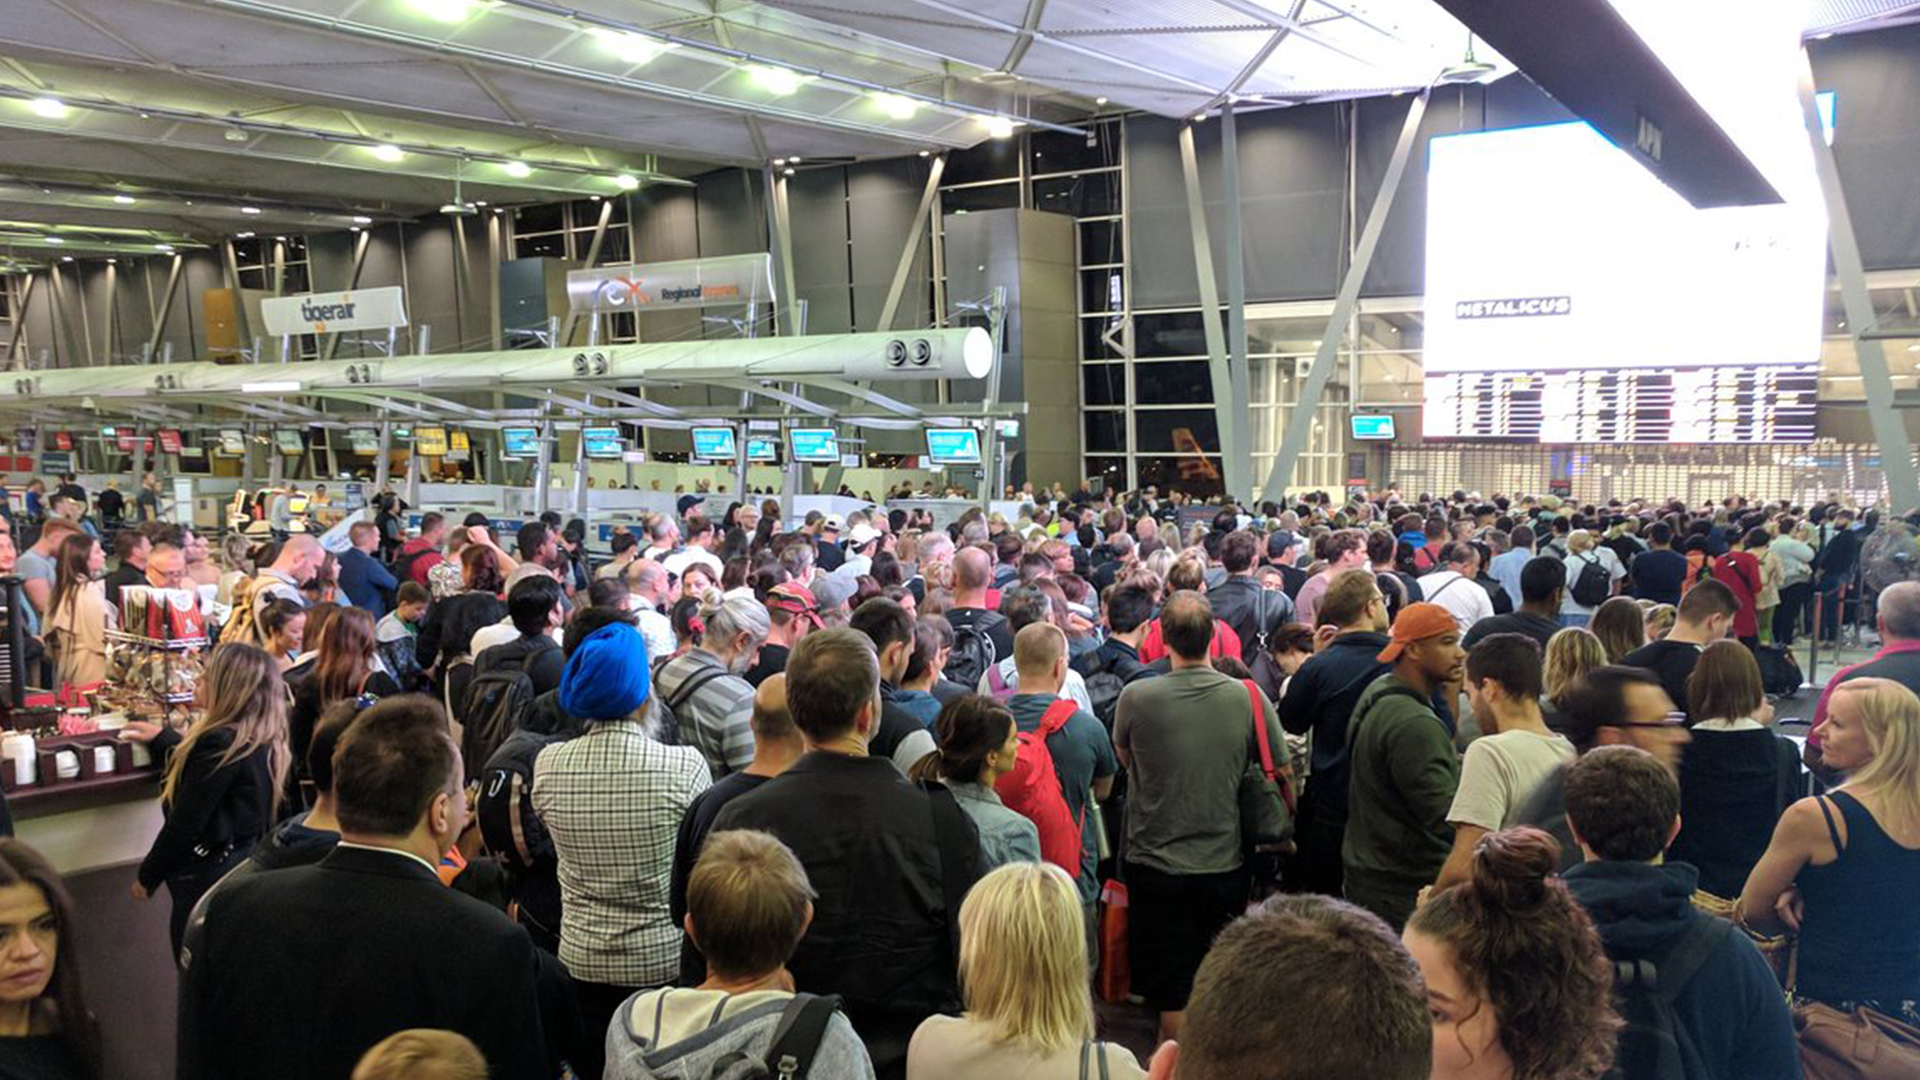 Security Issue At Brisbane Airport Causing Extensive Delays